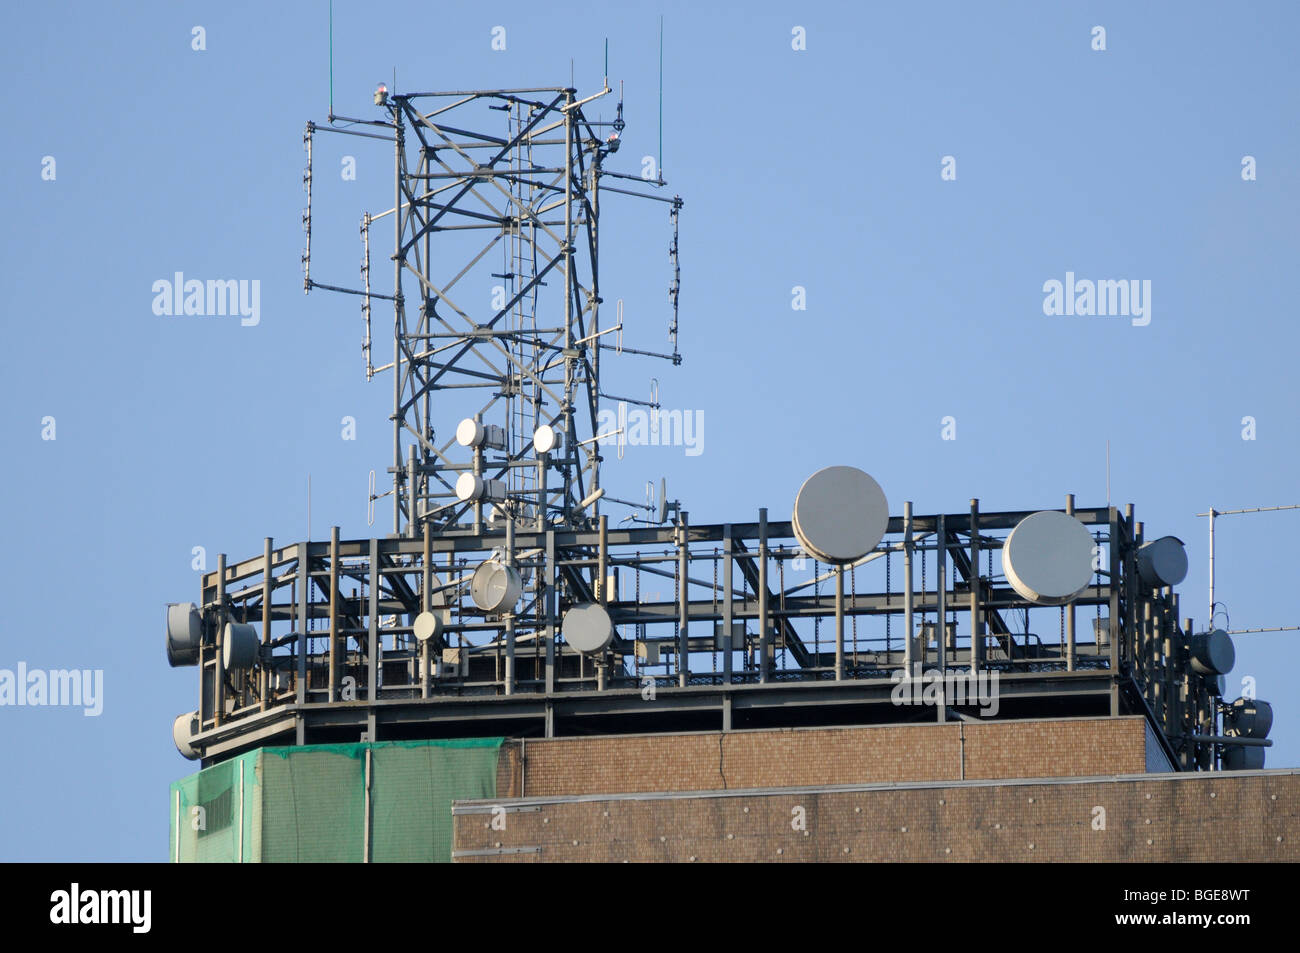 Set of telecommunications/telecoms antenna including RF, PMR, cellular, SDH and PDH microwave dishes on a tall building. - Stock Image